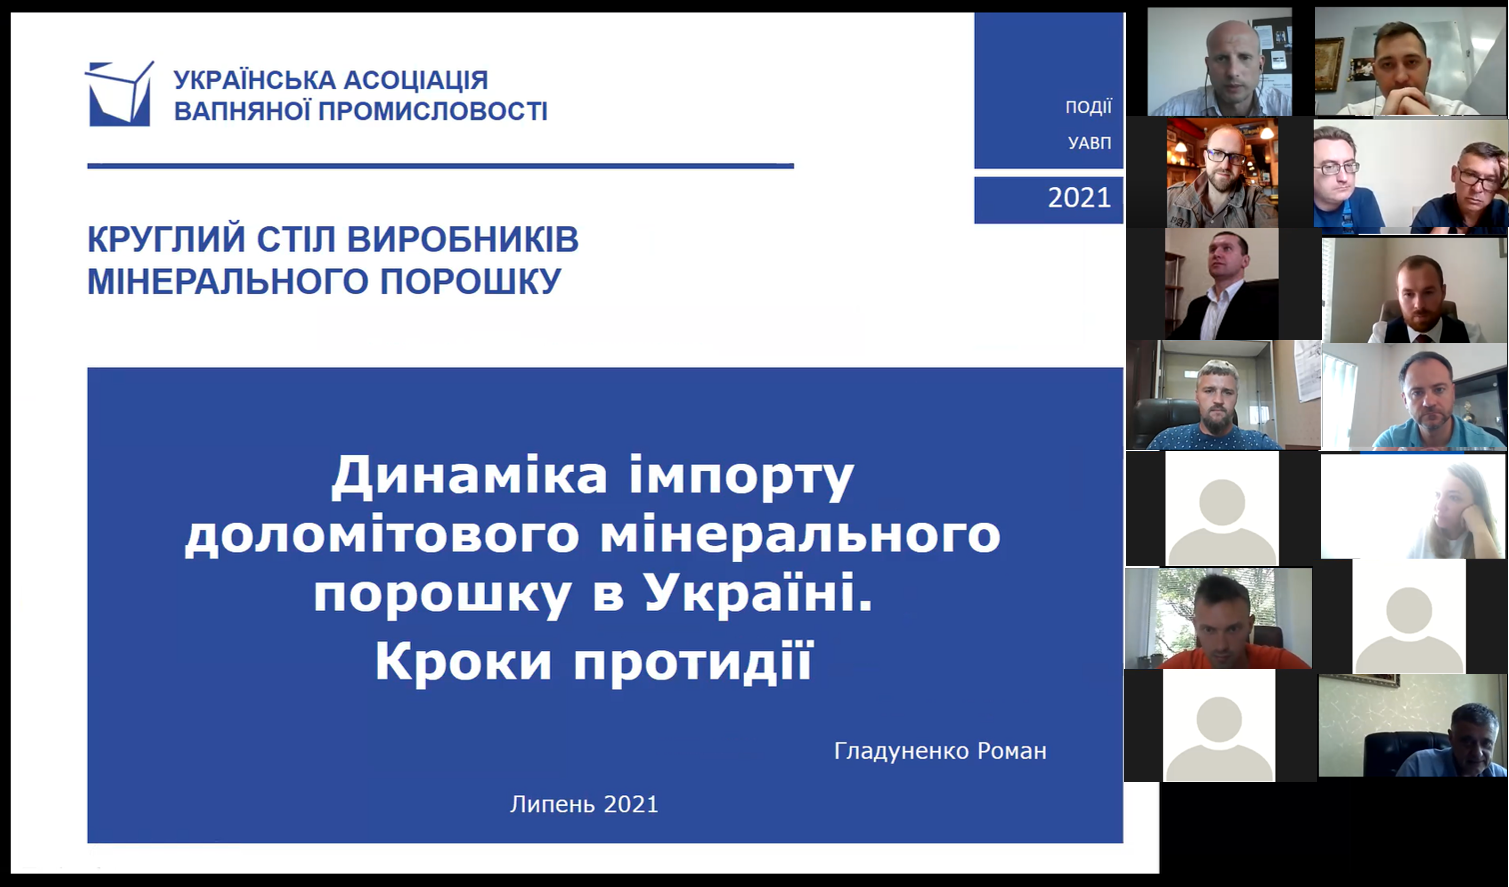 RESULTS OF THE MEETING OF MINERAL POWDER MANUFACTURERS ON THE ISSUE OF COUNTERING IMPORTS